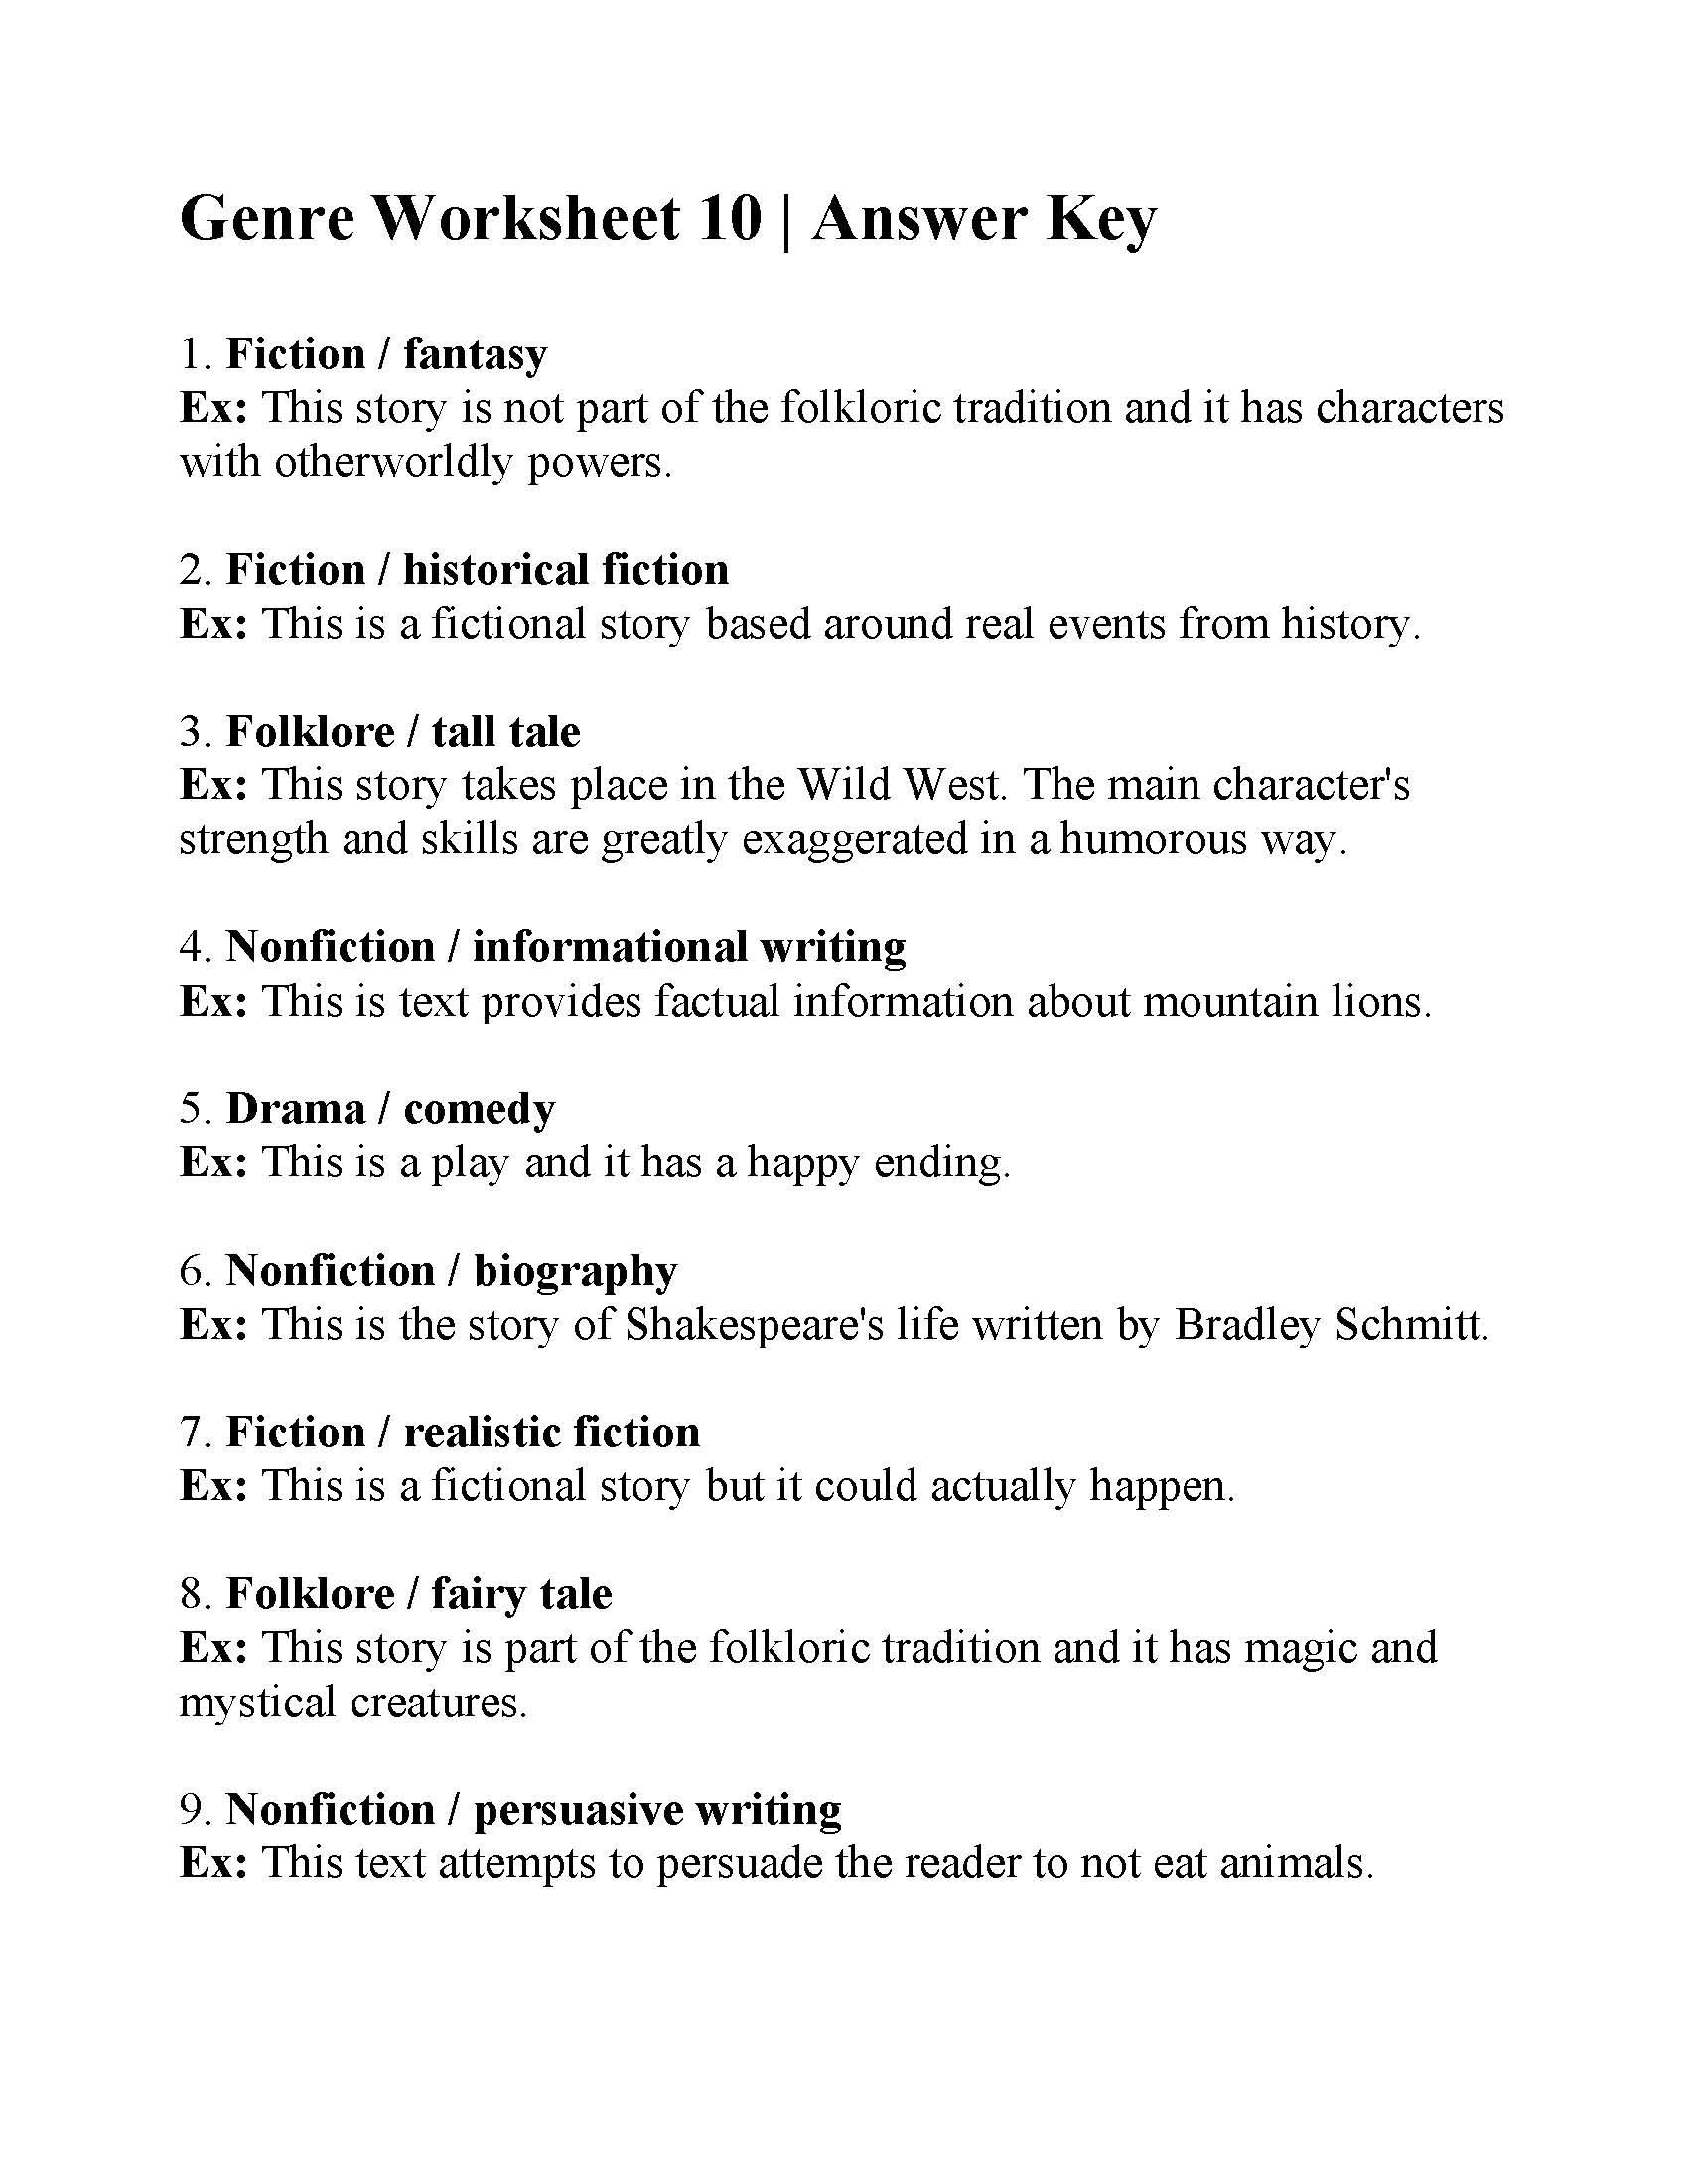 Genre Worksheet 10 Answers .rhymes other reading worksheets poems poetry present perfect readings proofreading puns reading comprehension riddles spelling summarizing tales and stories the news the plot tongue twisters translation. genre worksheet 10 answers